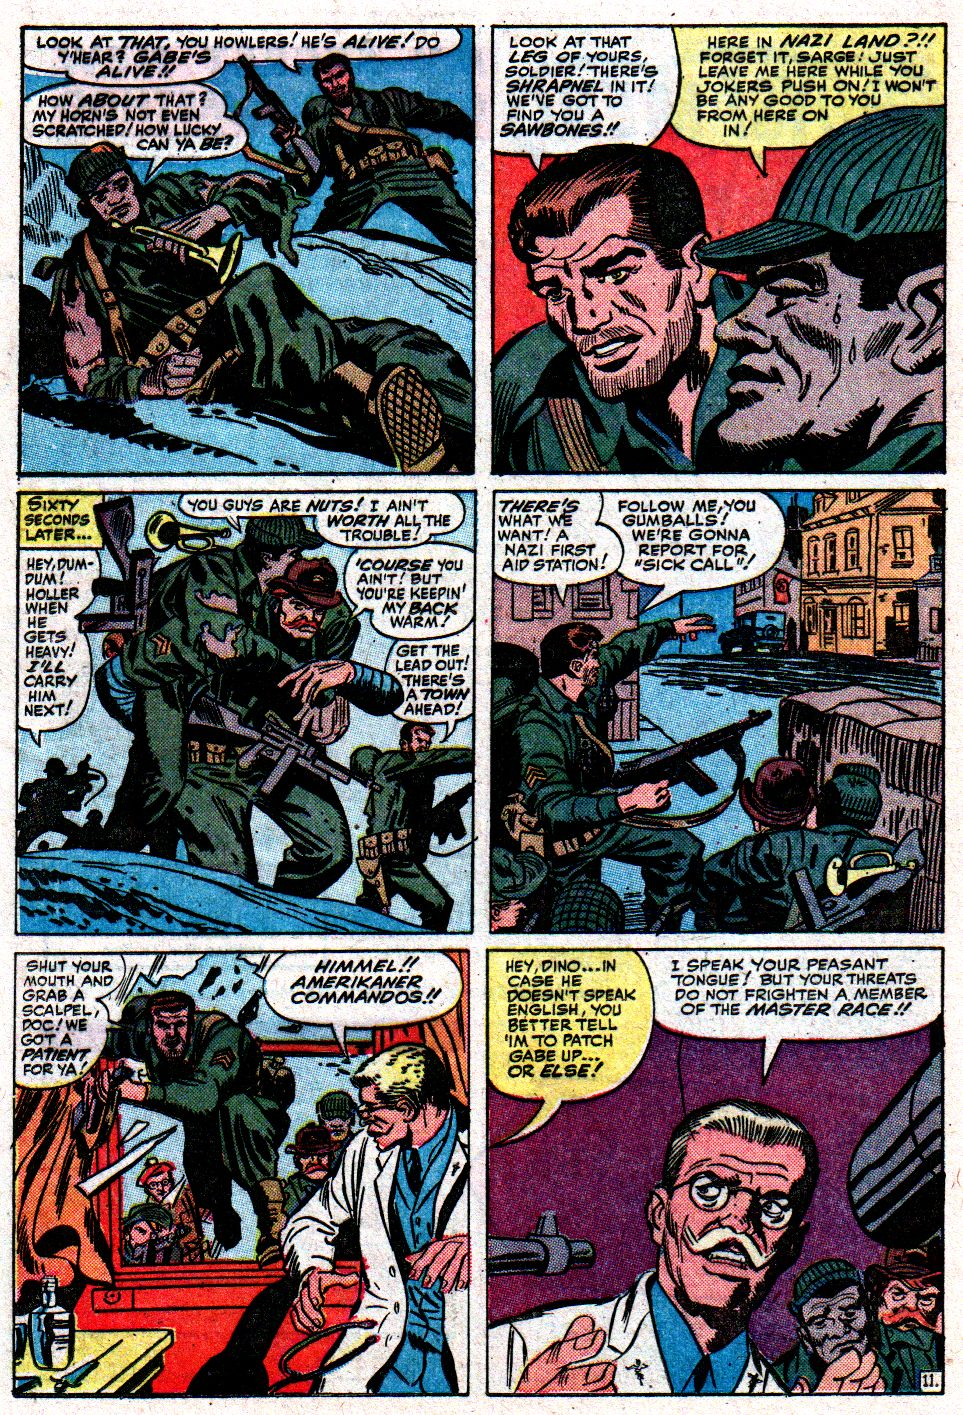 Read online Sgt. Fury comic -  Issue #8 - 16